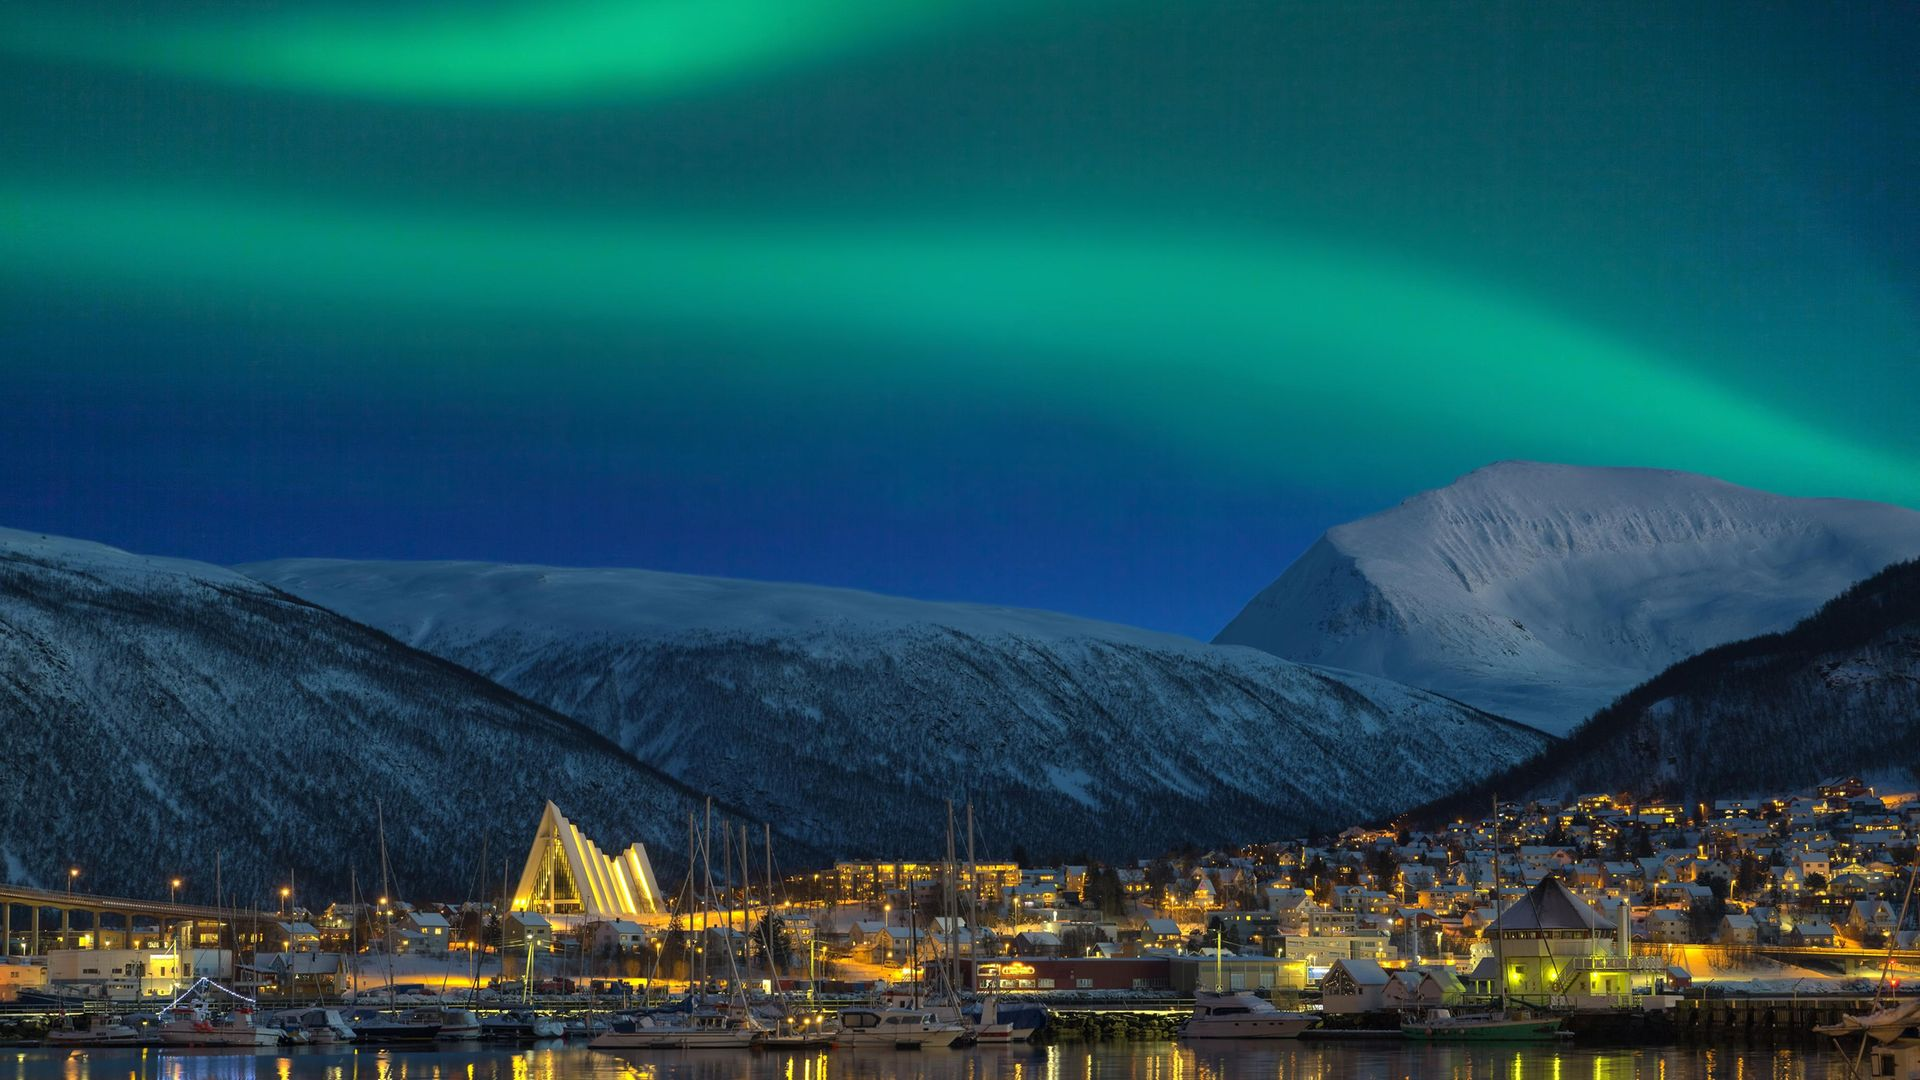 The view at night on illuminated Tromso city with cathedral and majestic aurora borealis - Credit: Getty Images